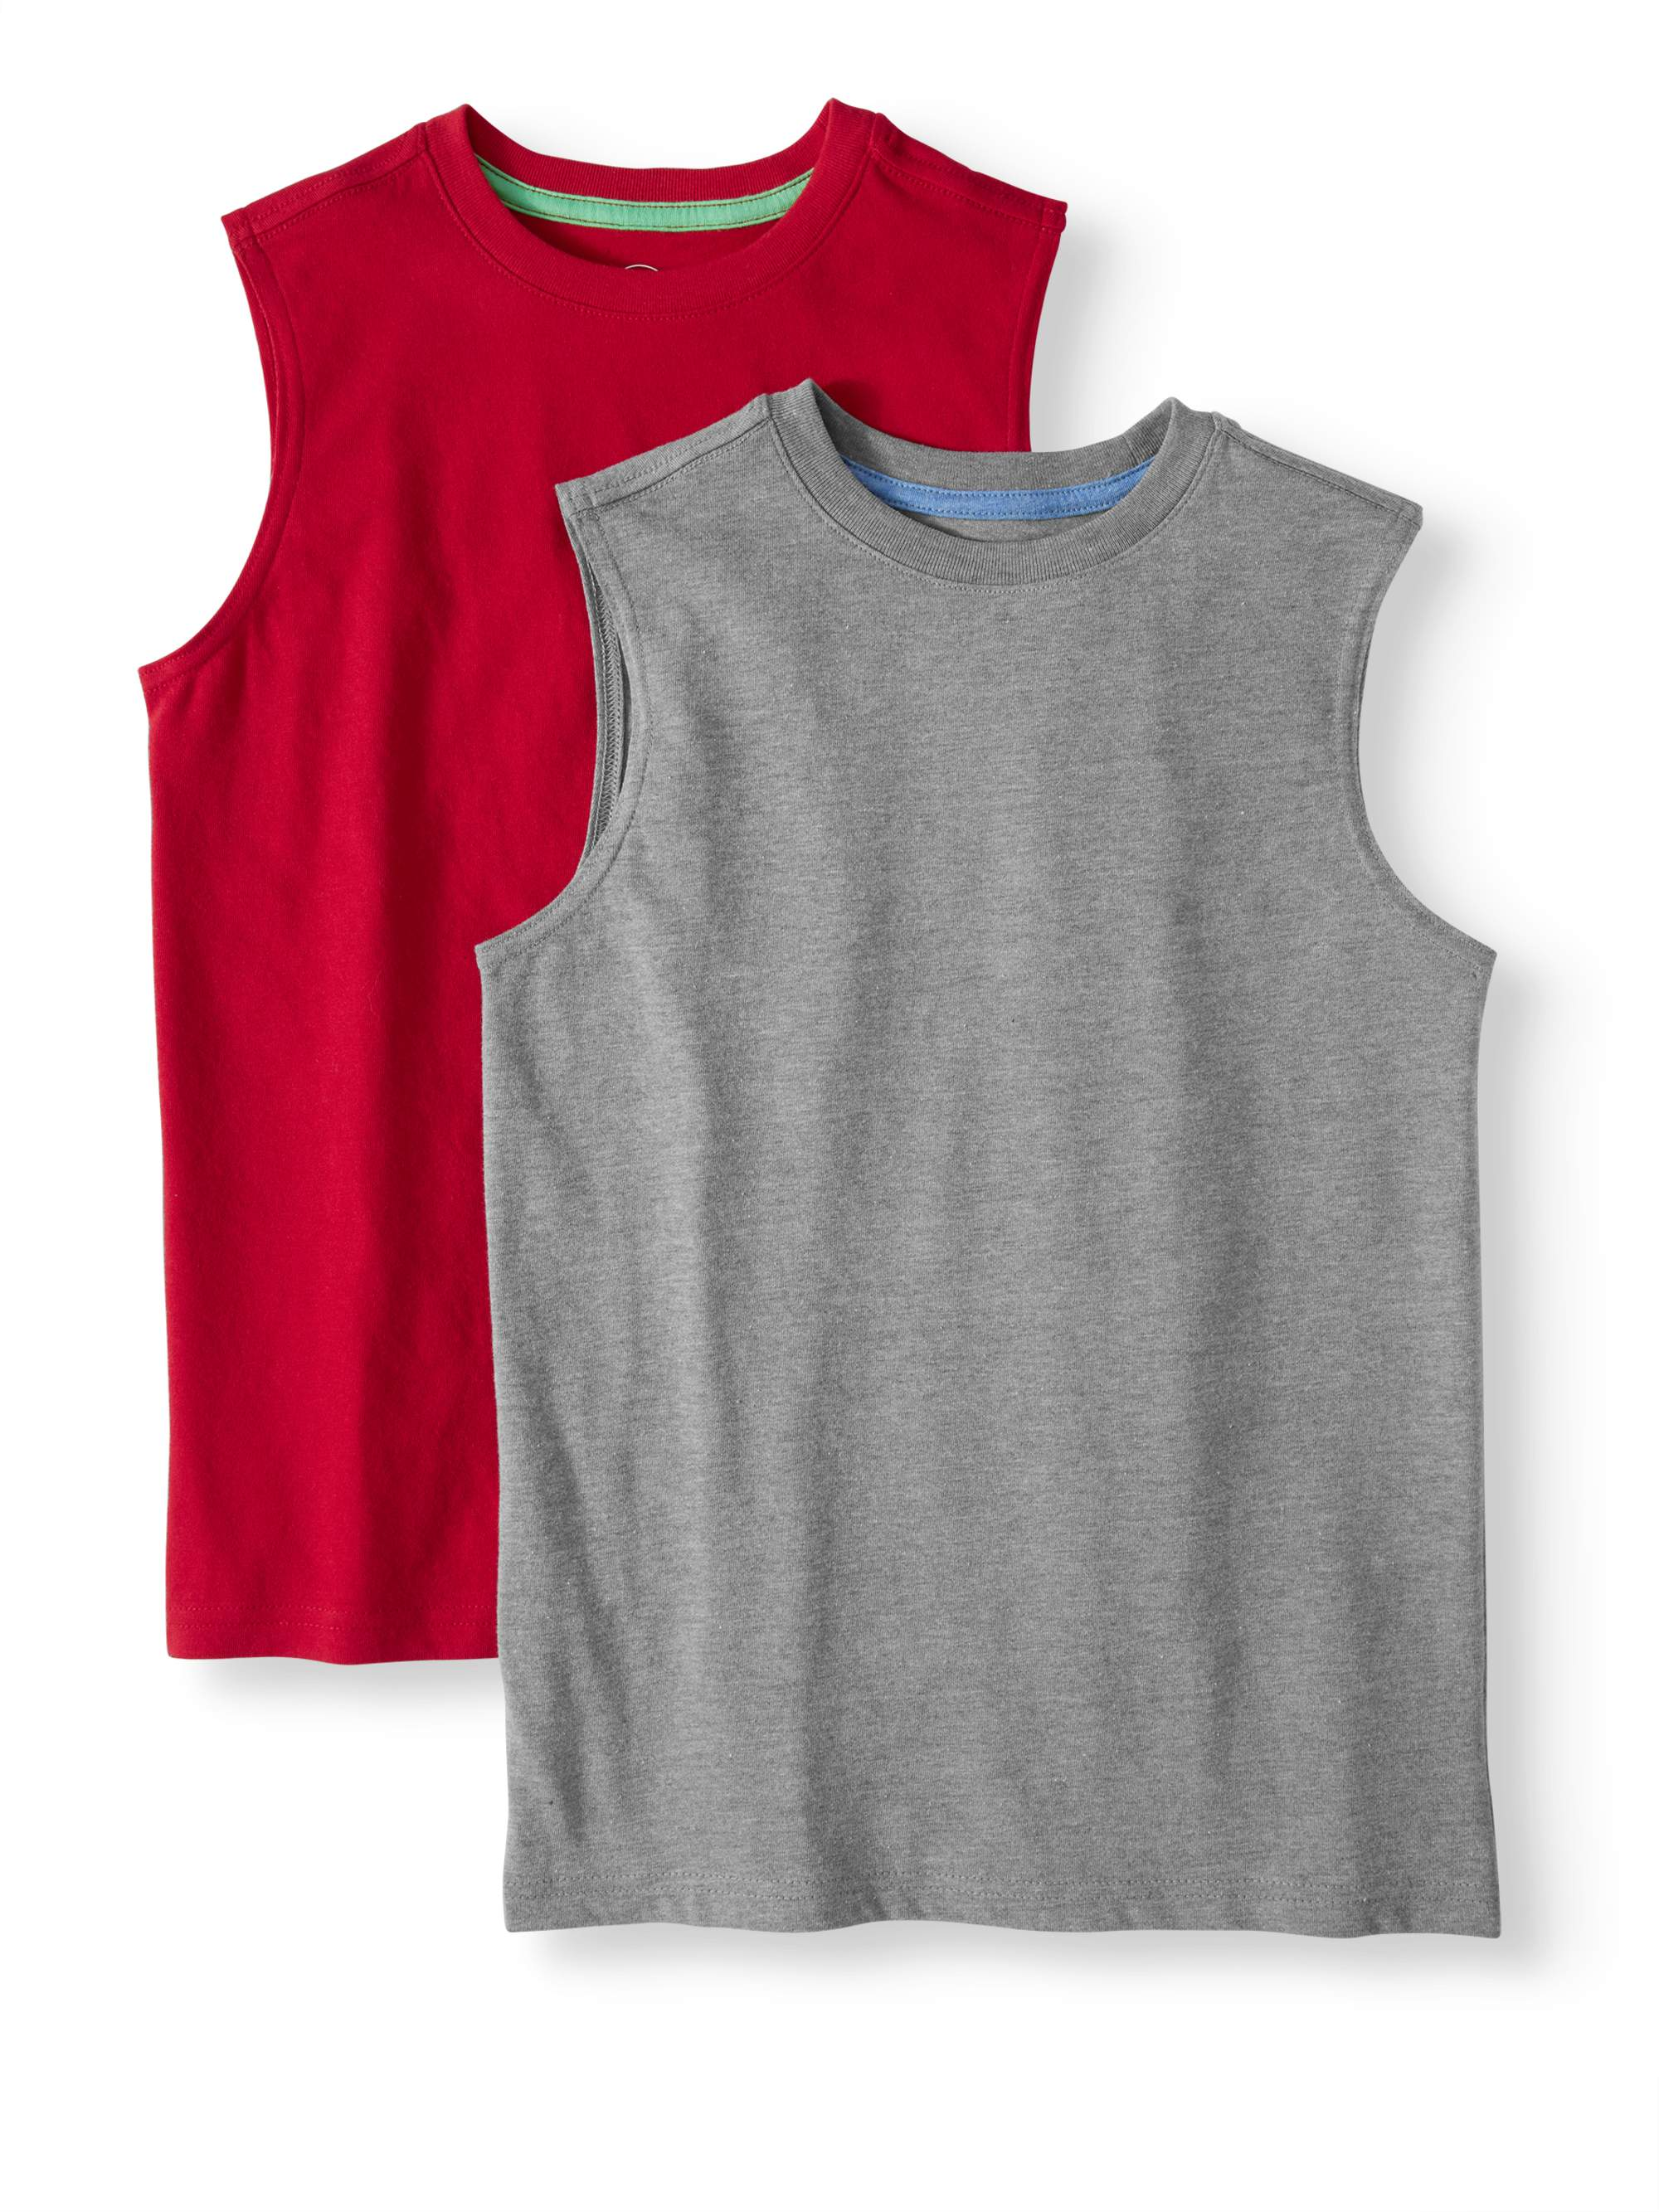 Sleeveless Tank, 2-Piece Multi-Pack Set (Little Boys, Big Boys, & Husky)